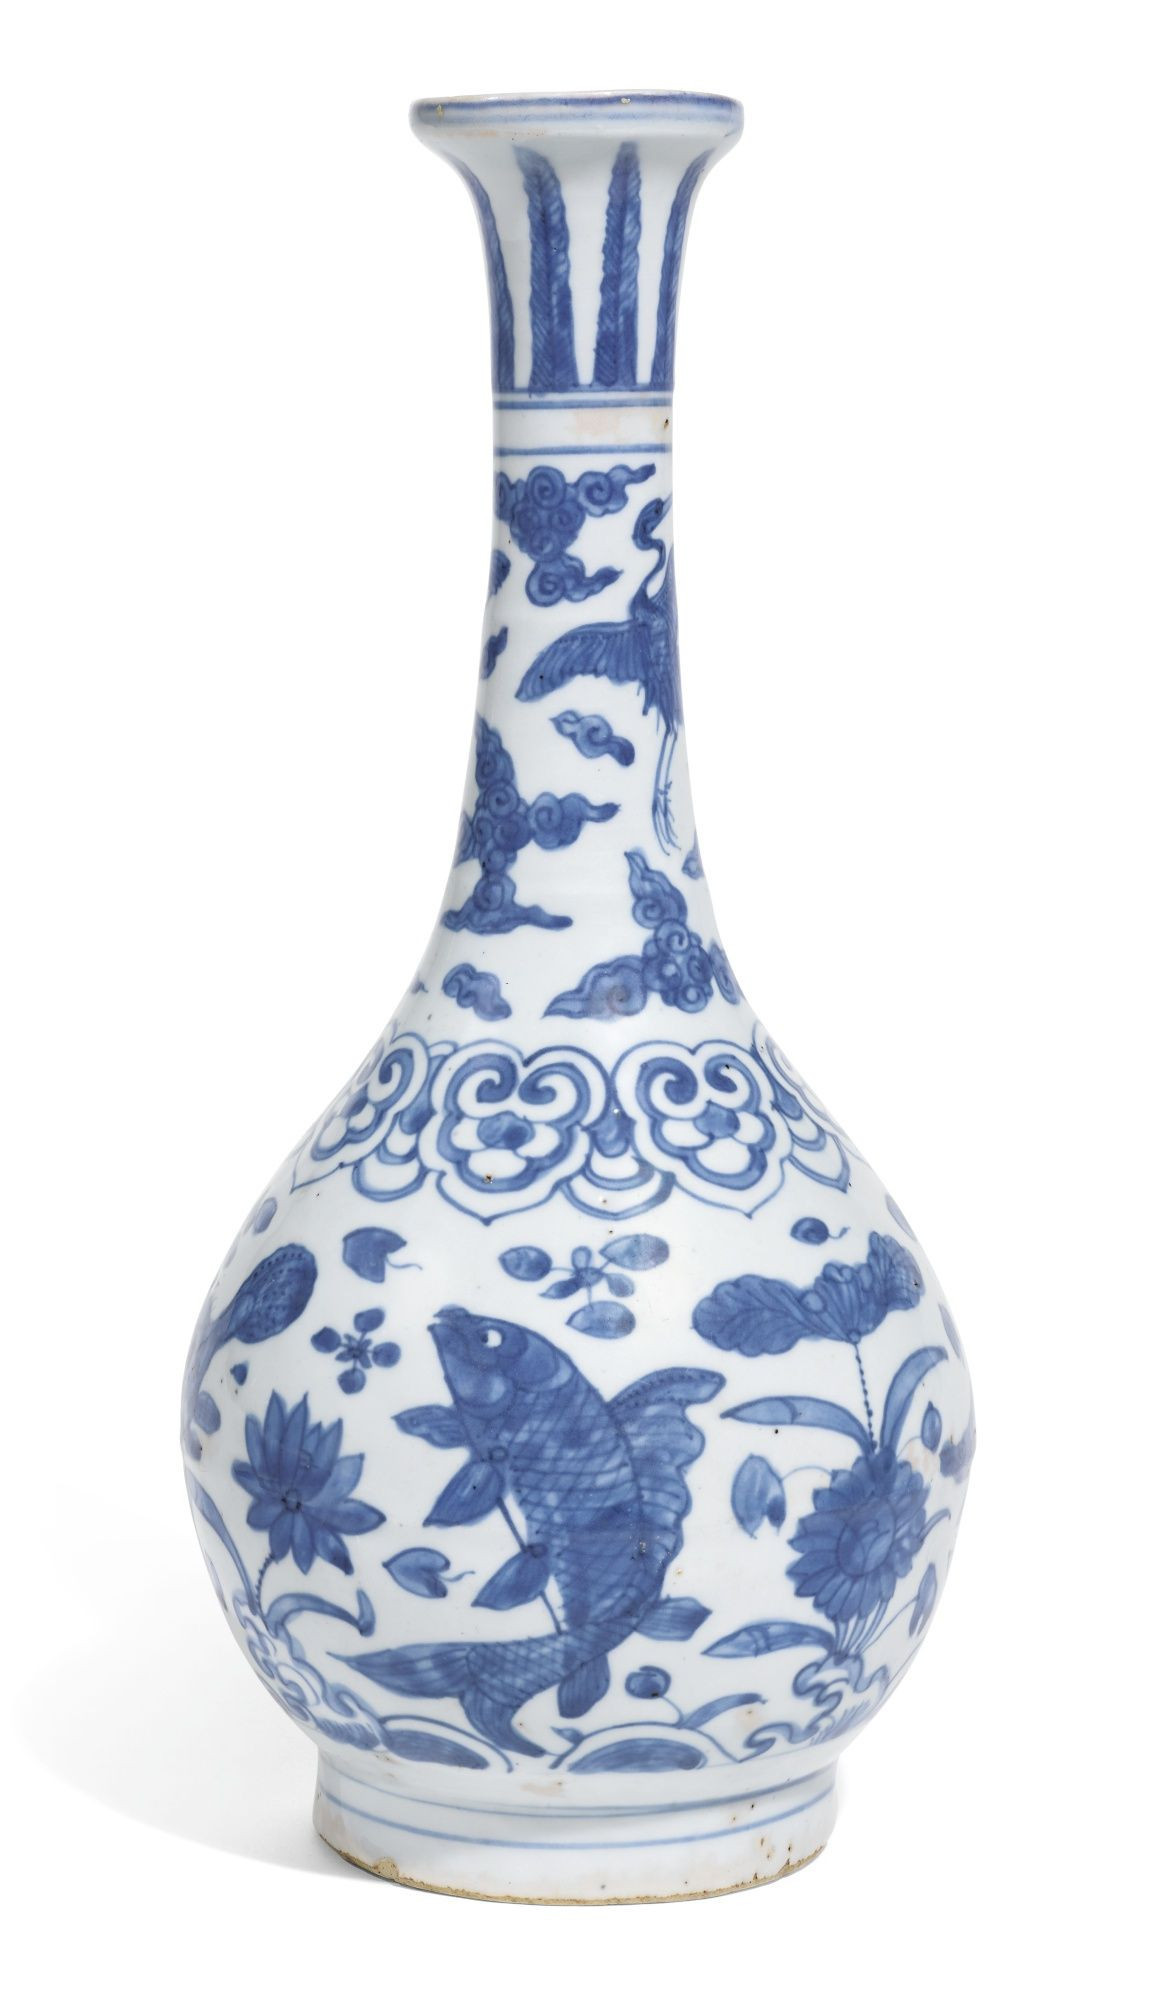 Small Chinese Blue and White Vases Of Blue and White Vases Gallery A Ming Style Blue and White Vase within Blue and White Vases Gallery A Blue and White Bottle Vase Ming Dynasty Jiajing Wanli Period